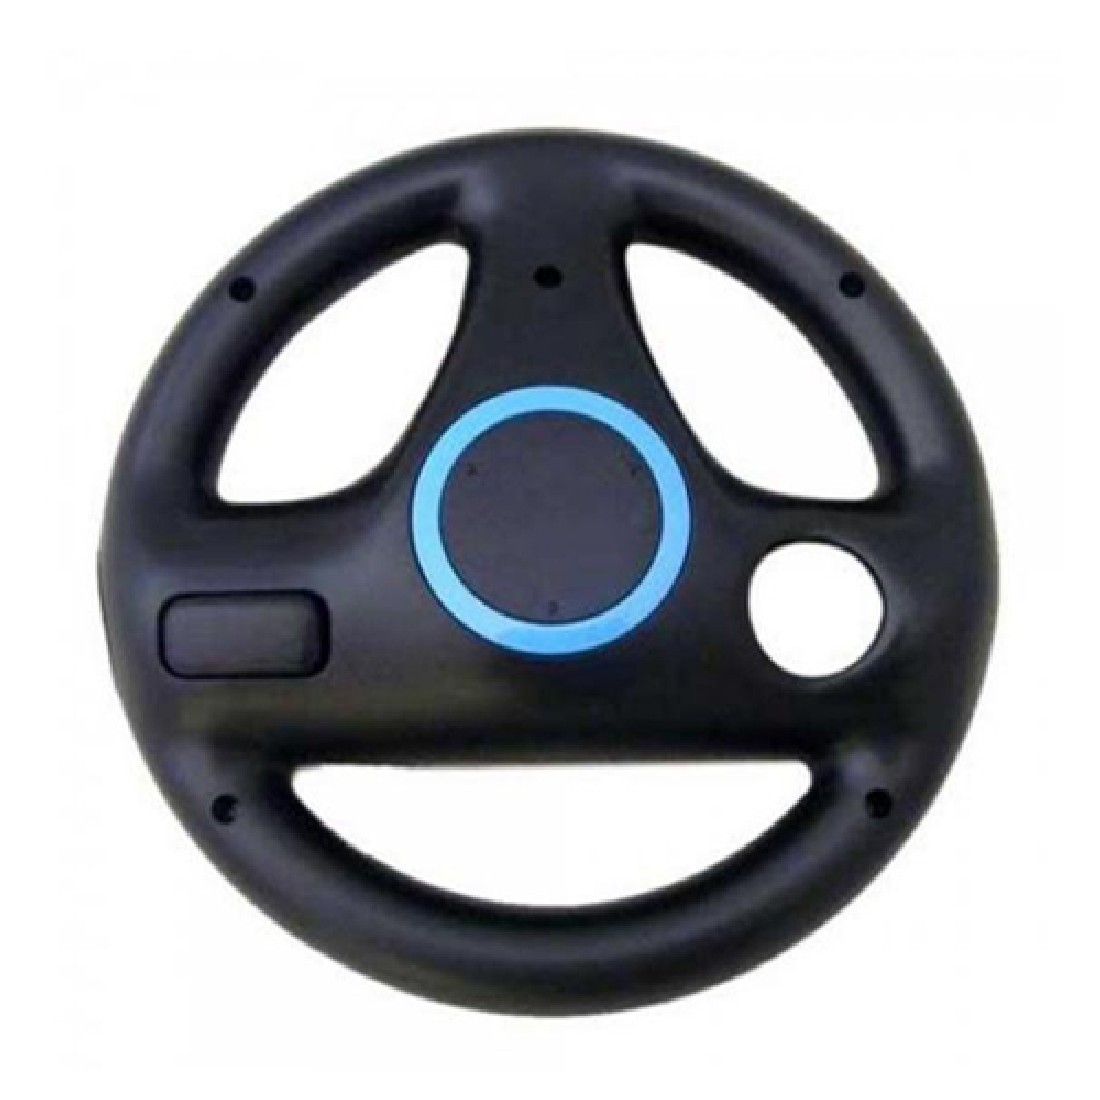 JESBERY Steering Wheel For Nintendo Wii Mario Kart Racing Top Quality Games Remote Controller